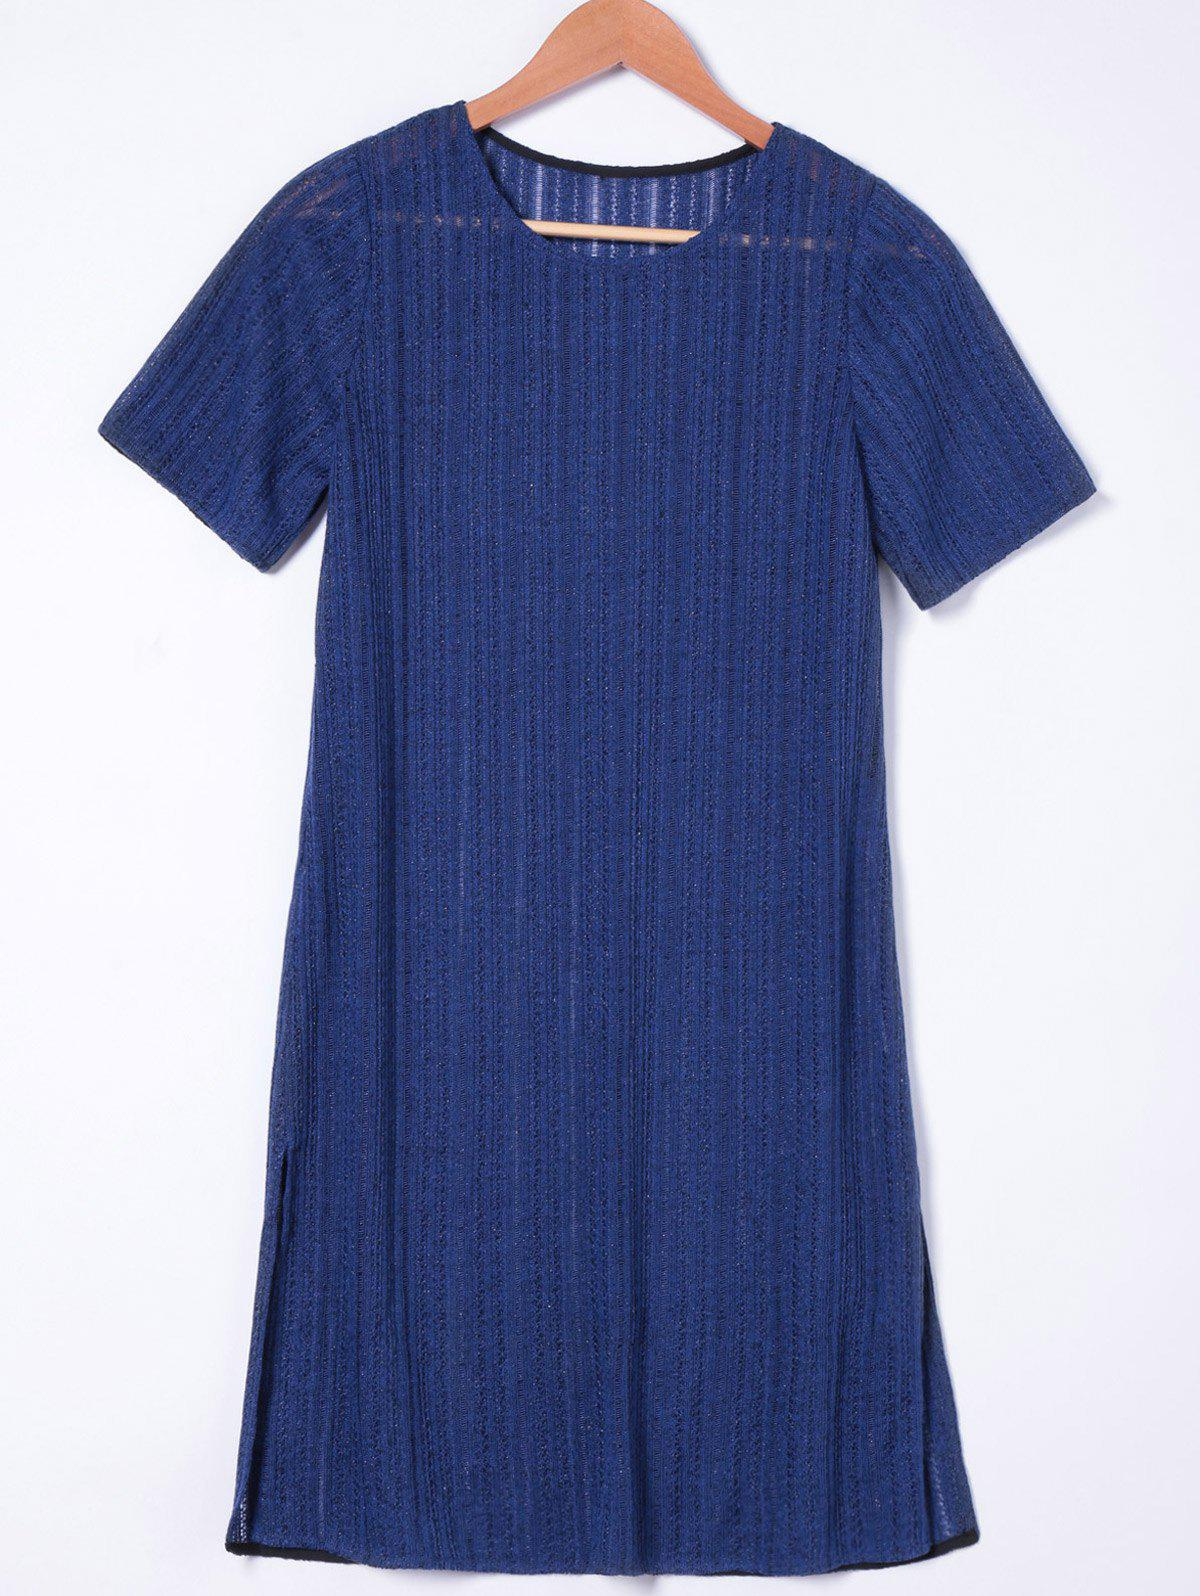 Jewel Neck Loose-Fitting Short Sleeves Dress - NAVY BLUE XL